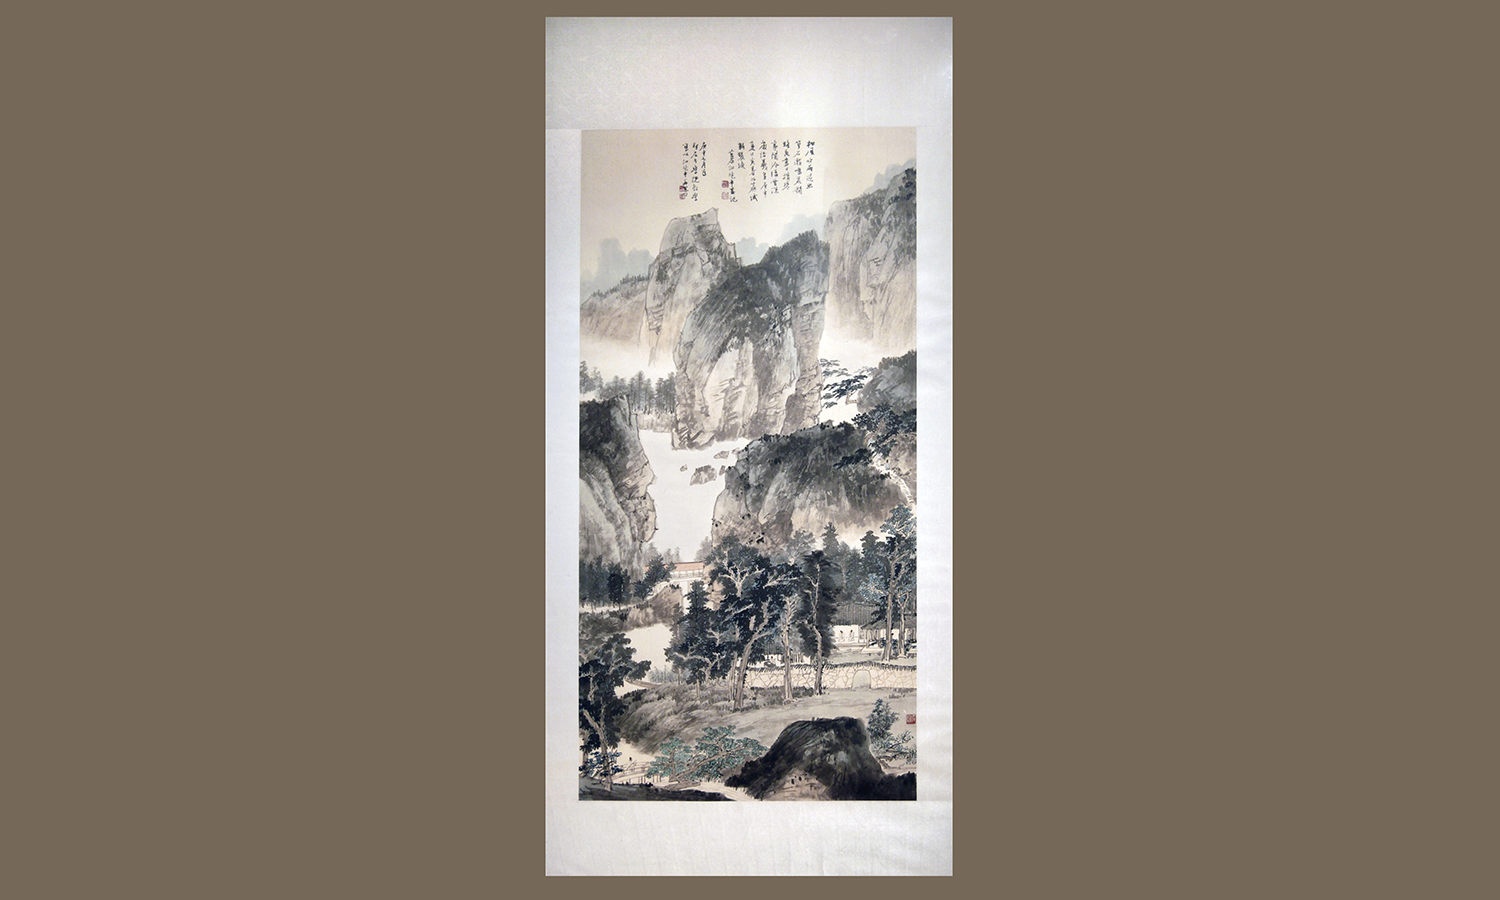 Chiang Chaoshen (1925-96, China) Untitled, 1980. Ink andcolor on paper, 189 x 94 cm. hws-c-12